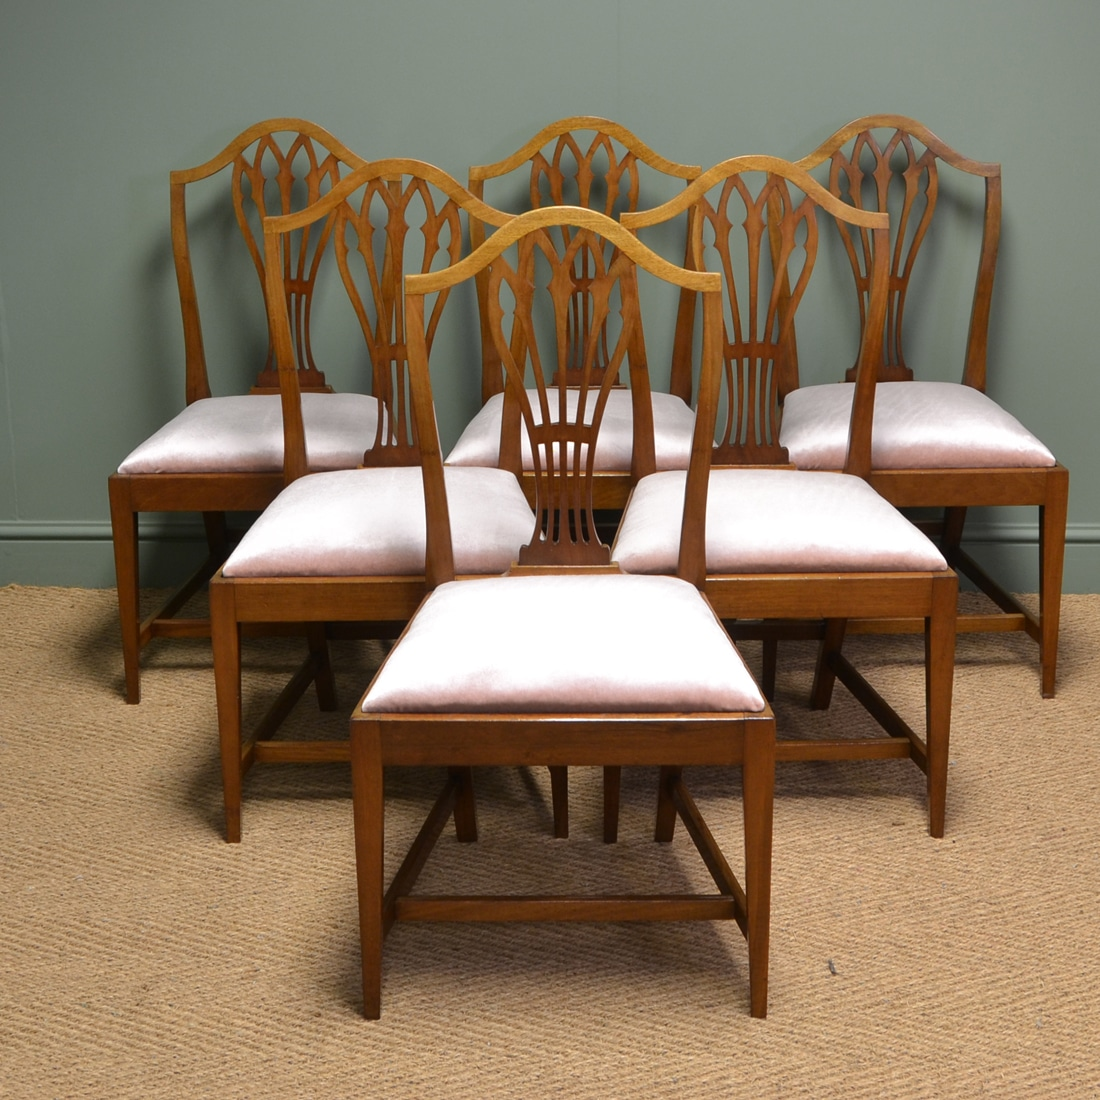 Antique Mahogany Dining Room Furniture: Elegant Mellow Mahogany Edwardian Hepplewhite Design